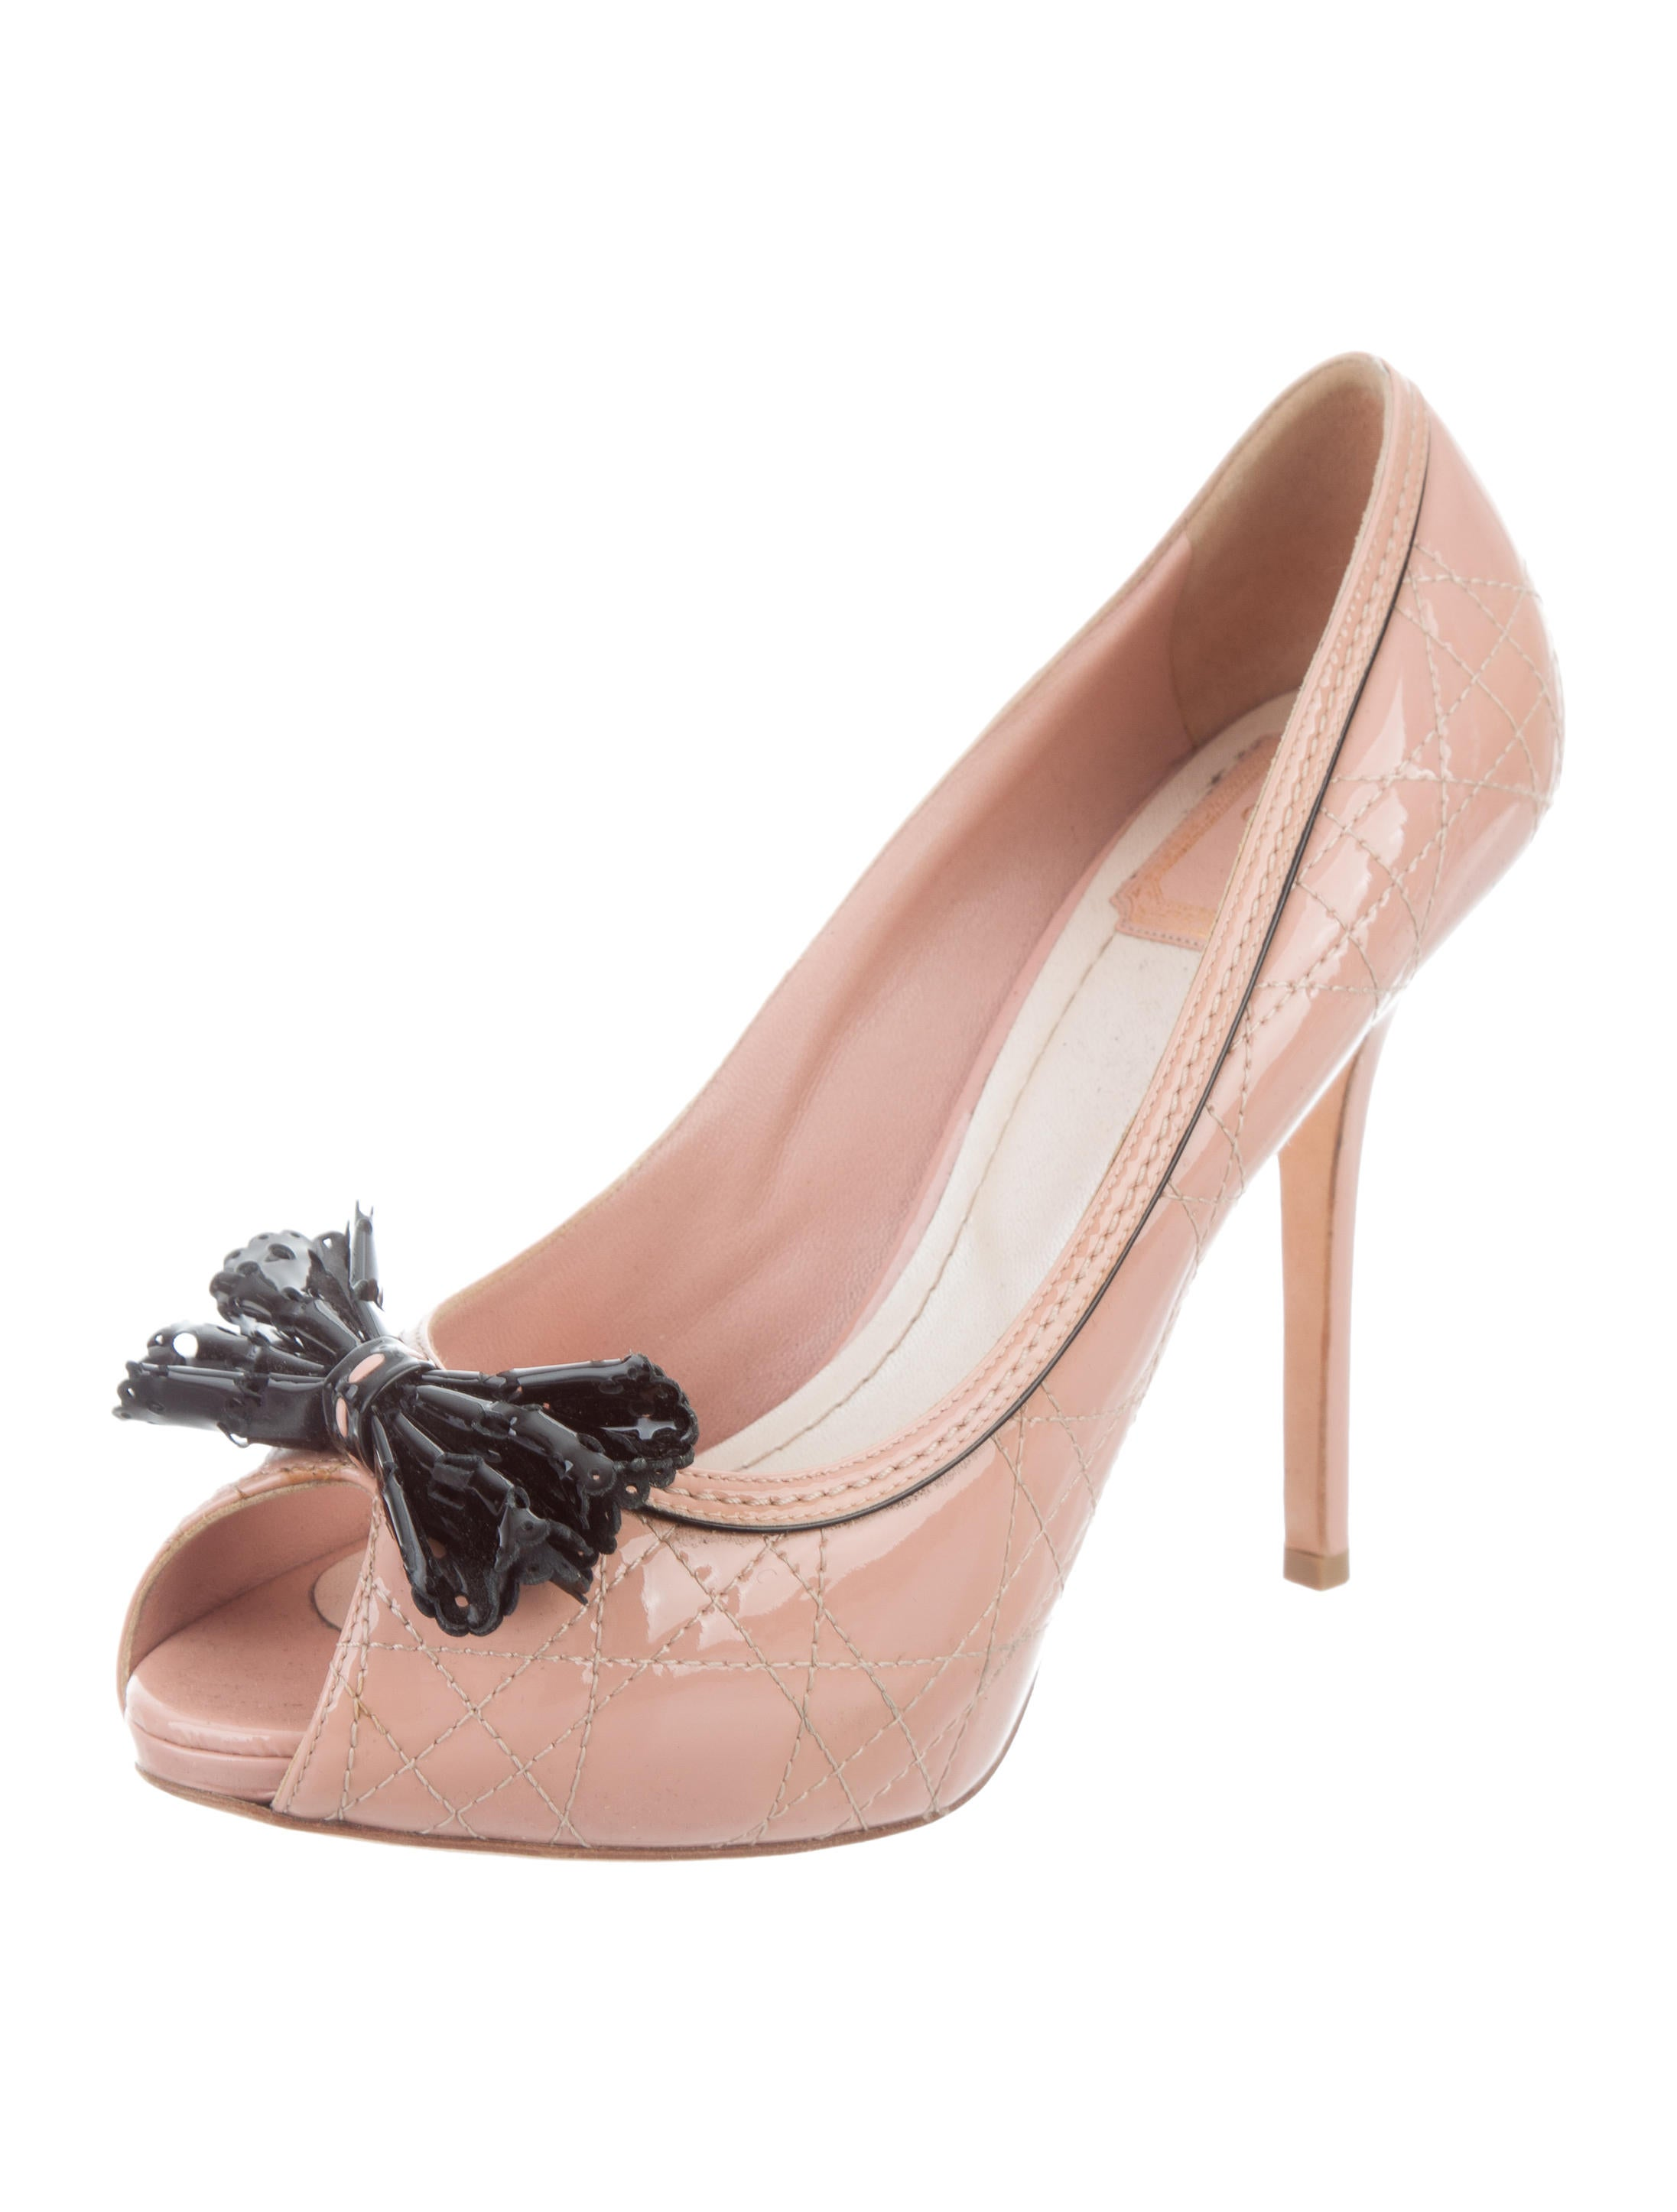 aa047172329d37 Christian Dior Cannage Bow-Accented Pumps free shipping professional big  sale cheap online free shipping